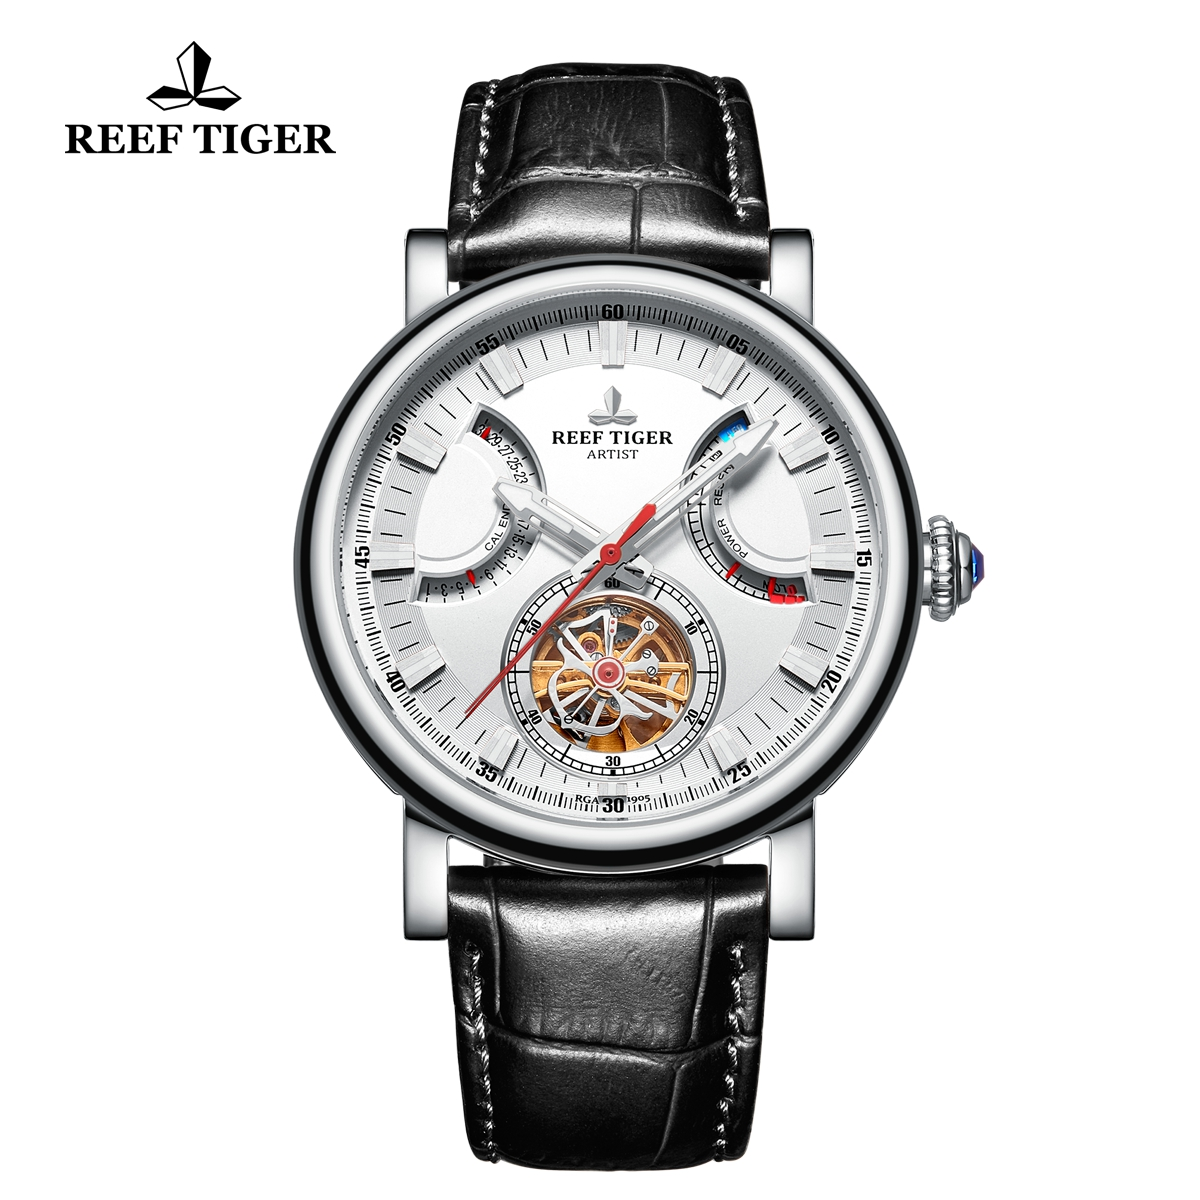 Reef Tiger Artist Photographer Solid Steel Leather Strap White Dial Tourbillon Automatic Watch RGA1950-YWB